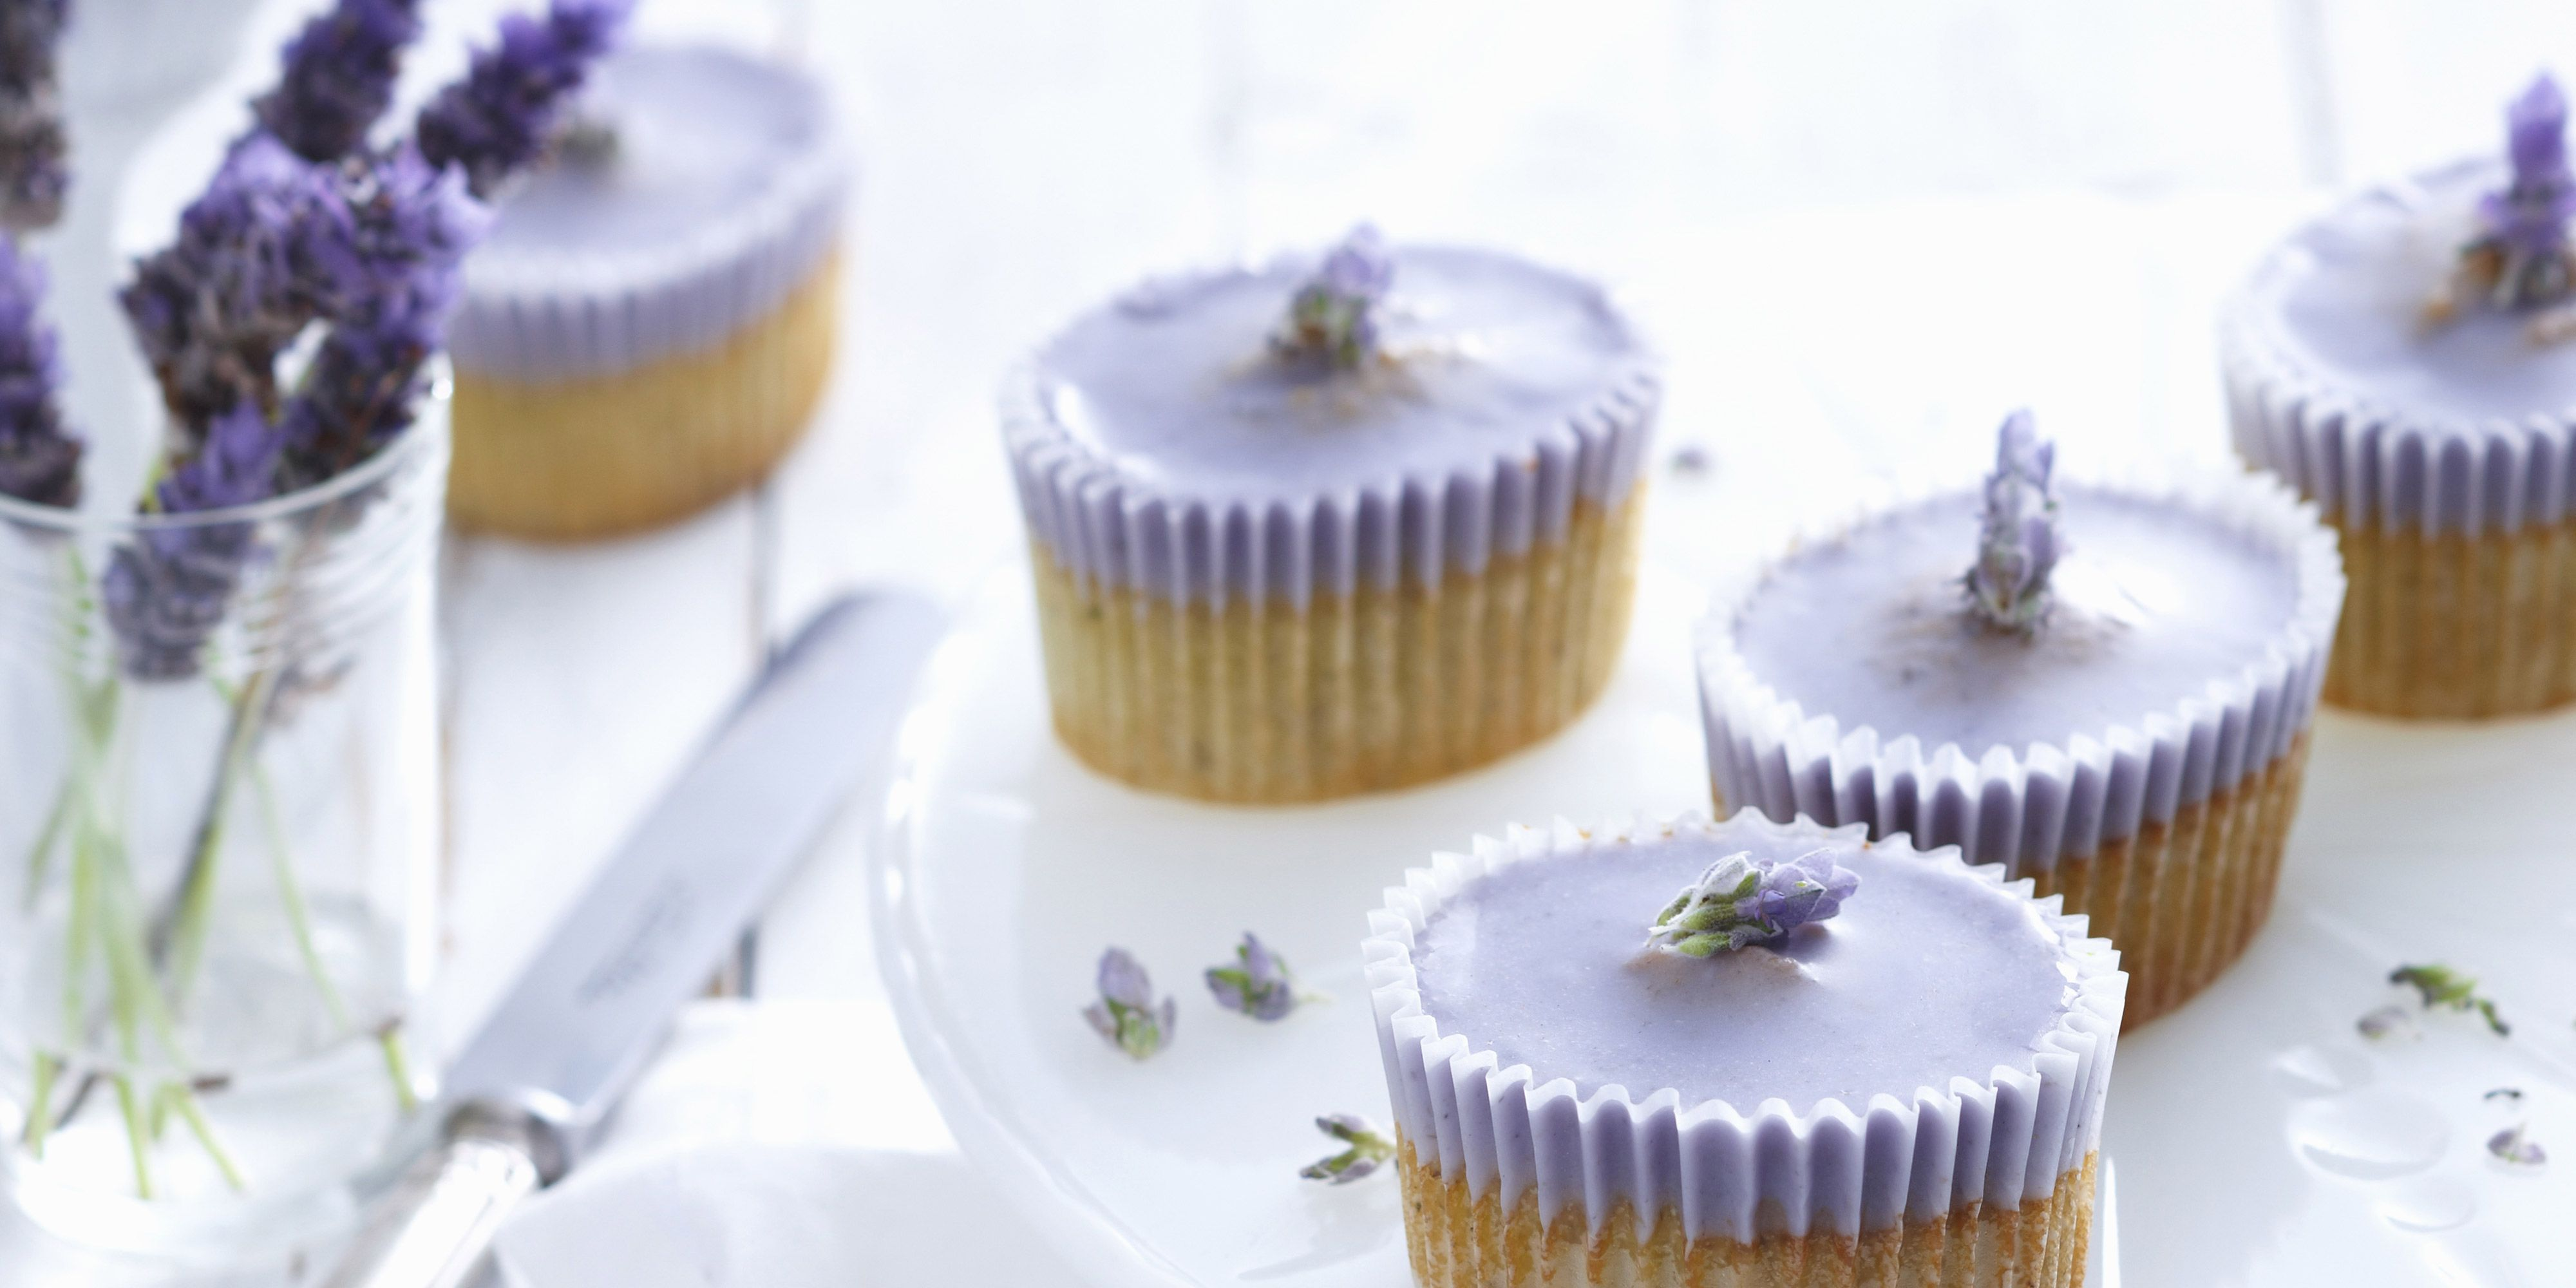 8 Floral Flavored Desserts Fit For A Queen